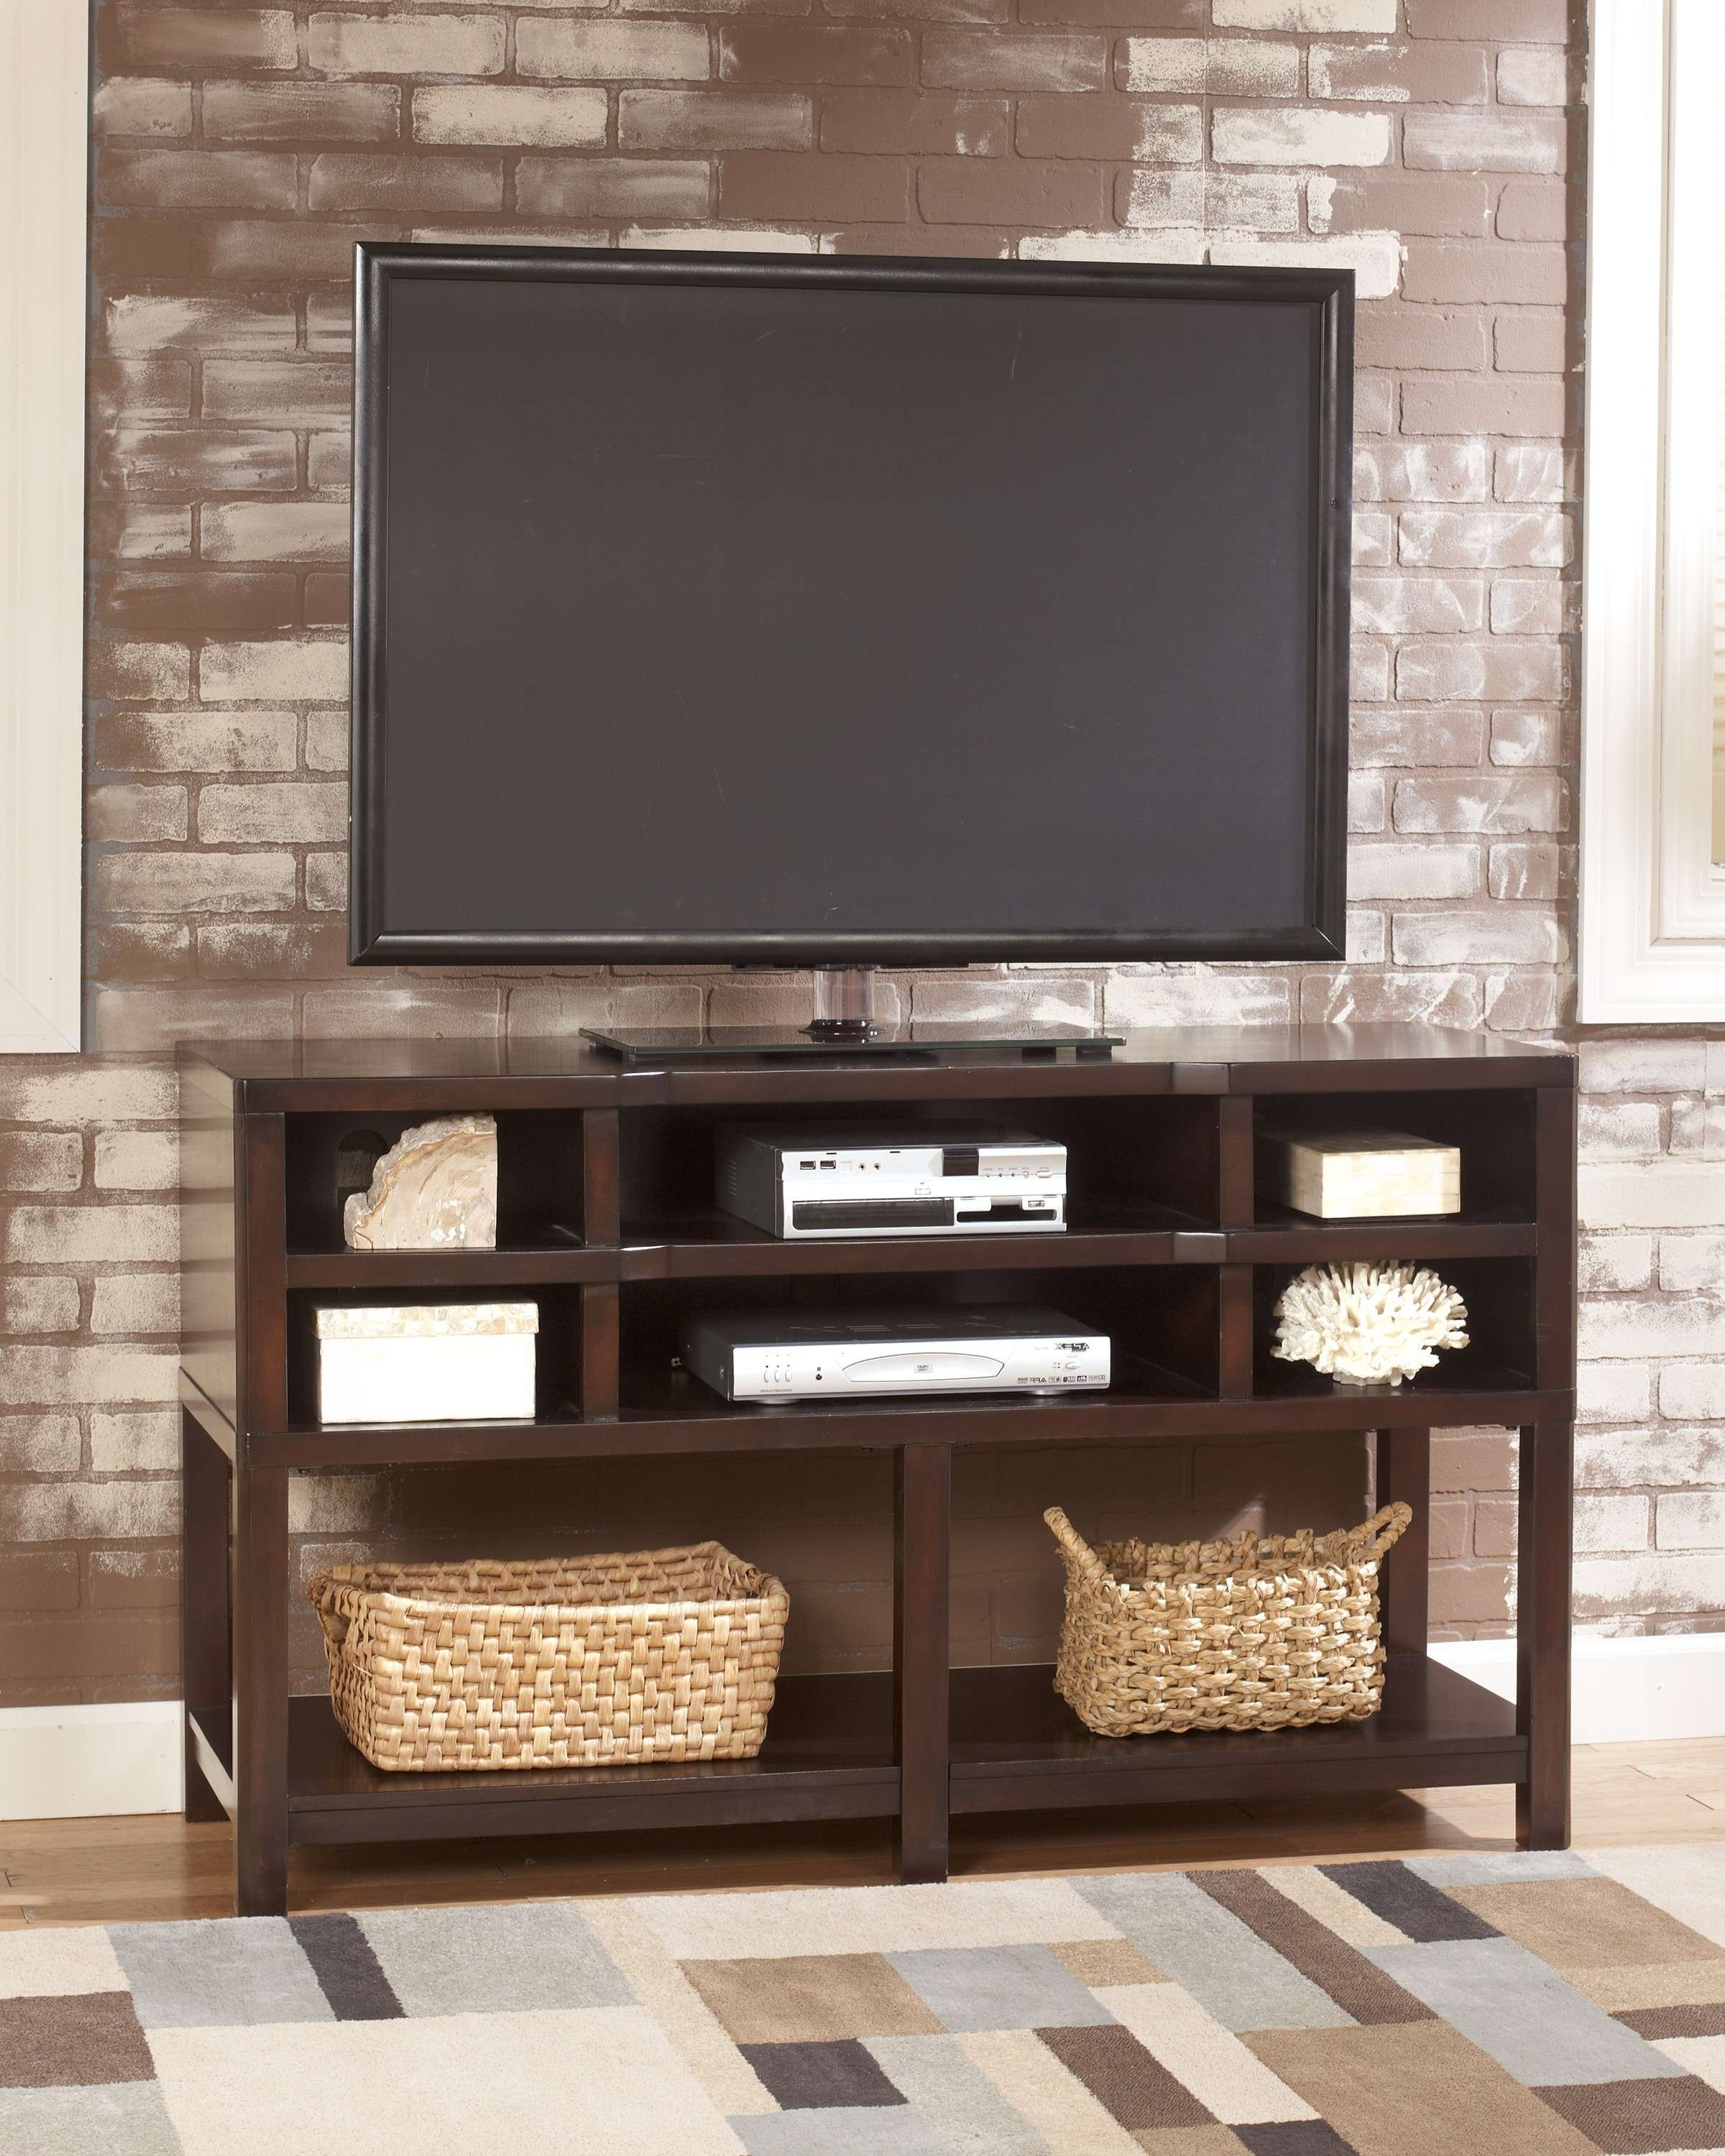 Simple Modern Oak Flat Screen Tv Stand Console Table With Throughout Tv Stands With Storage Baskets (View 8 of 15)